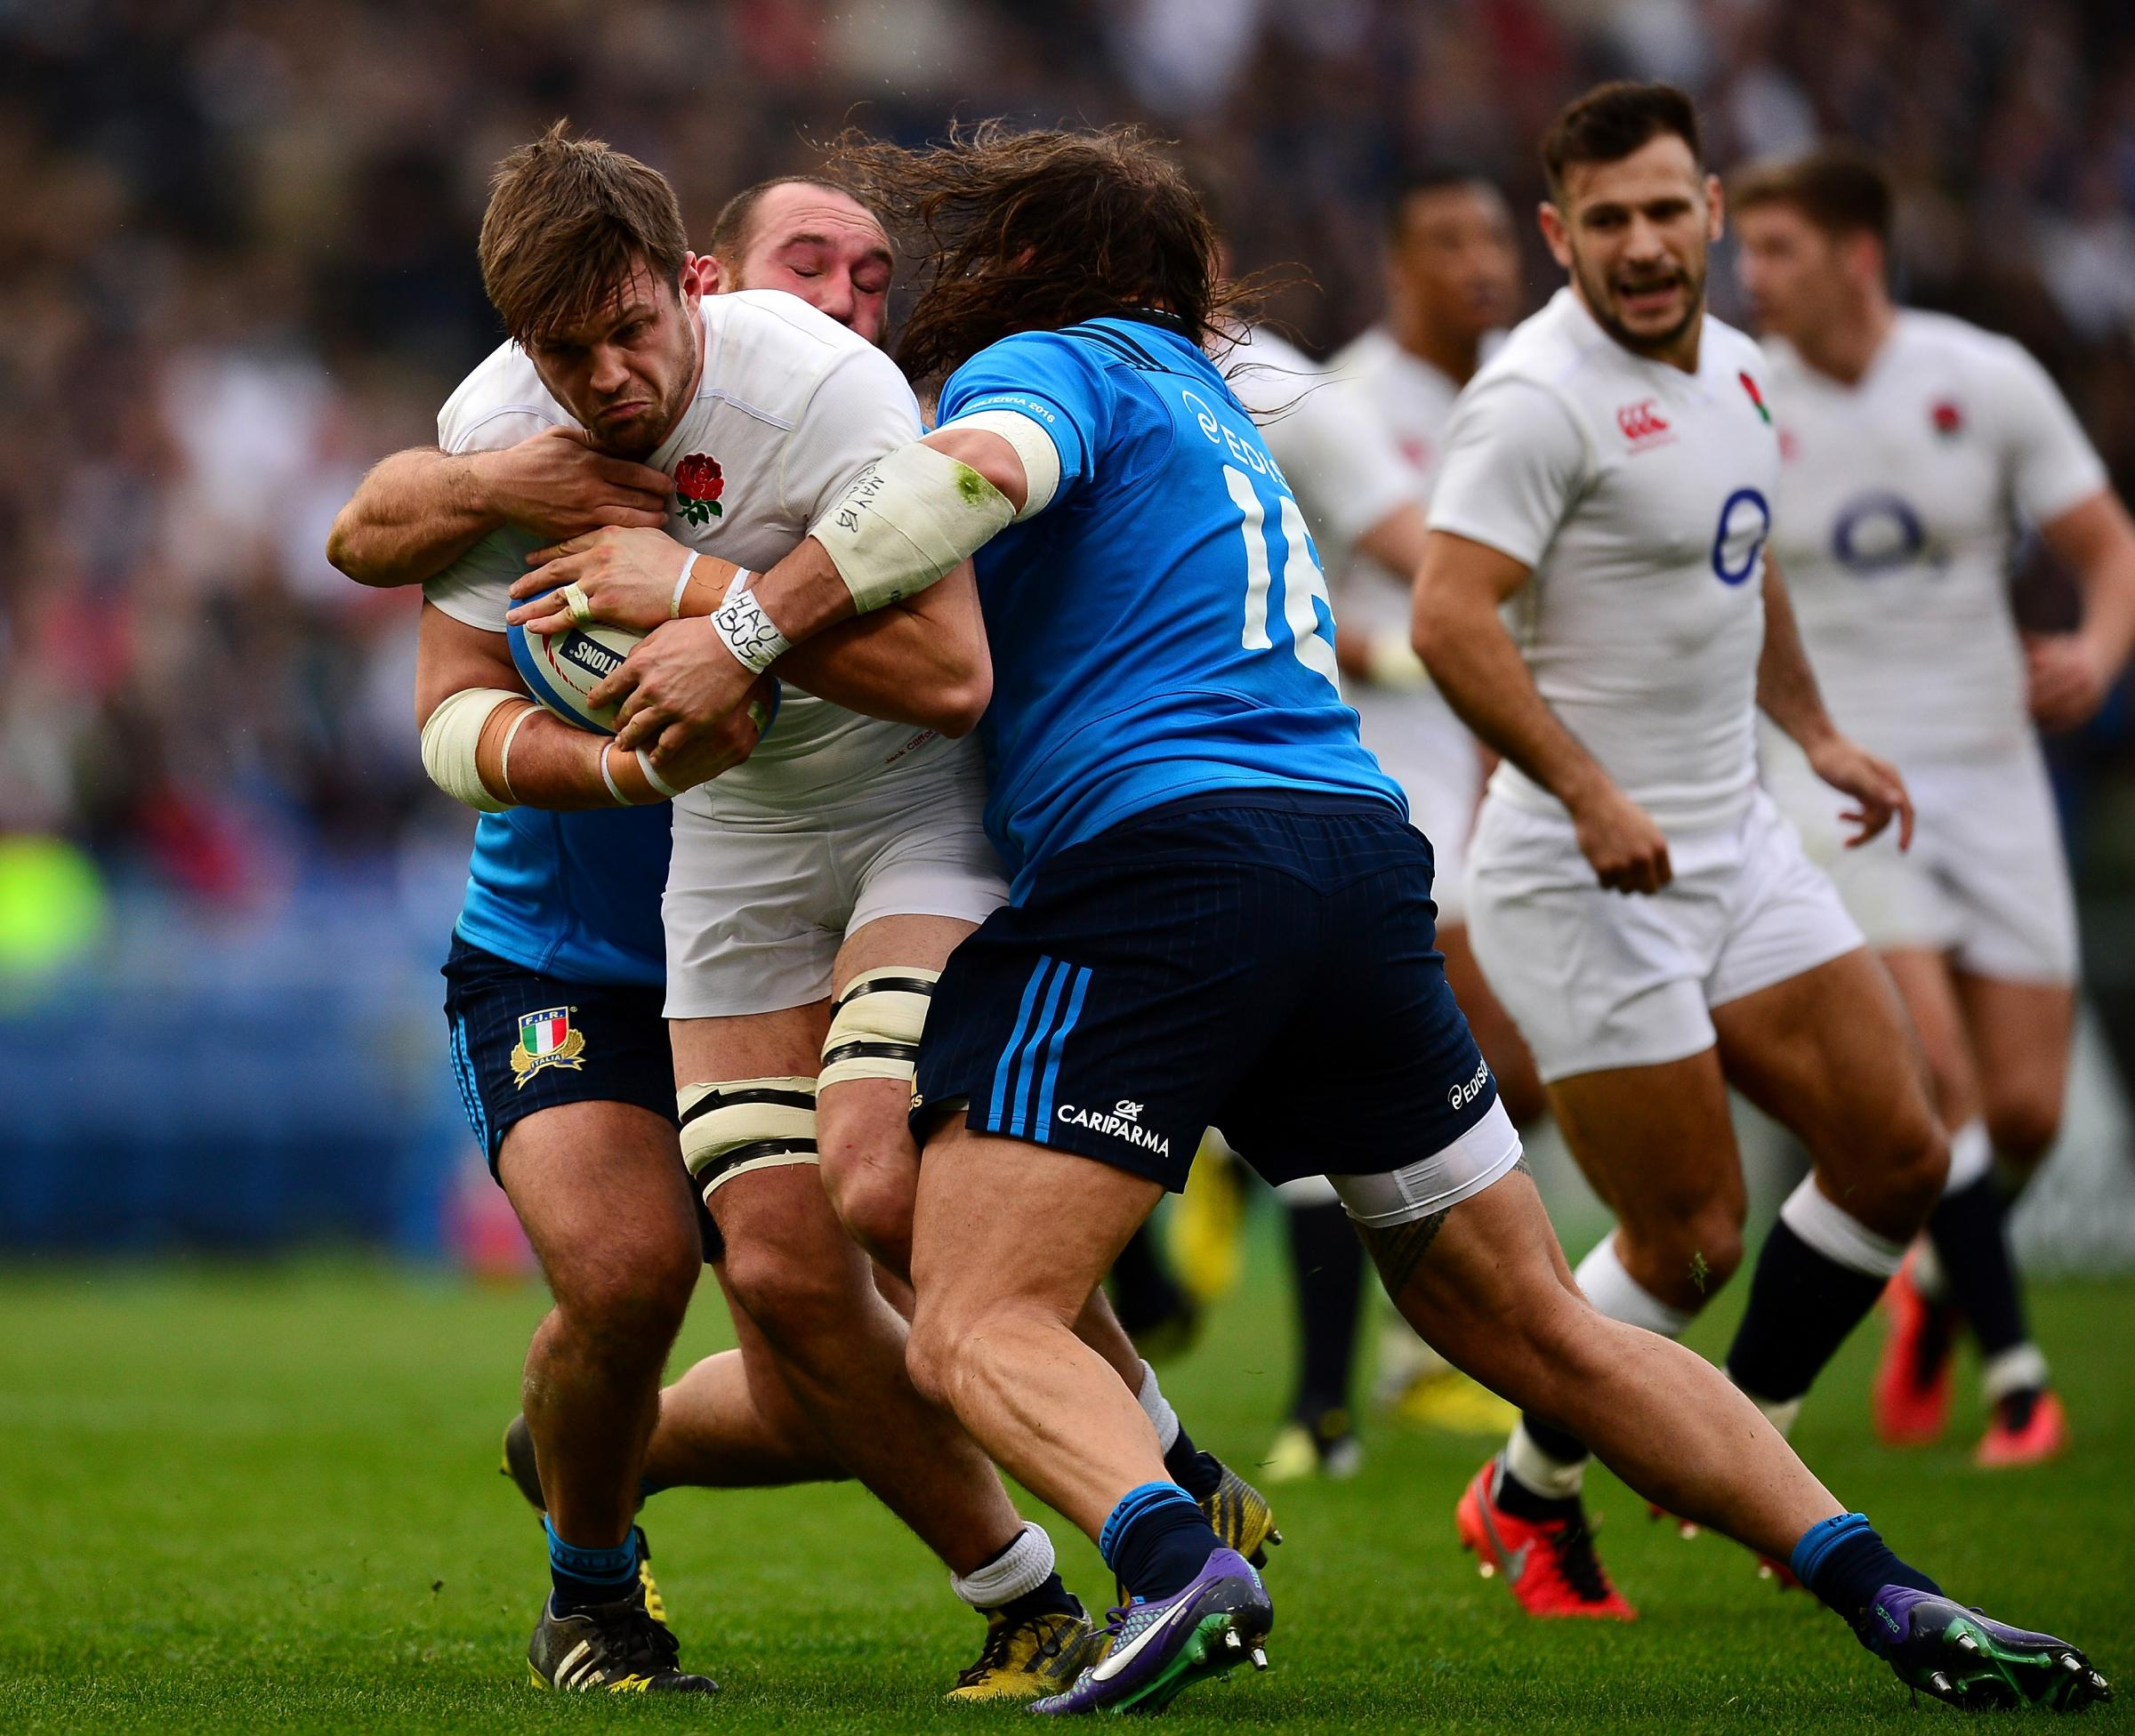 For his buddy: England's Jack Clifford, in action against Italy during the RBS Six Nations, is a new patron of cardiac charity CRY in memory of his friend         Picture: Getty Image